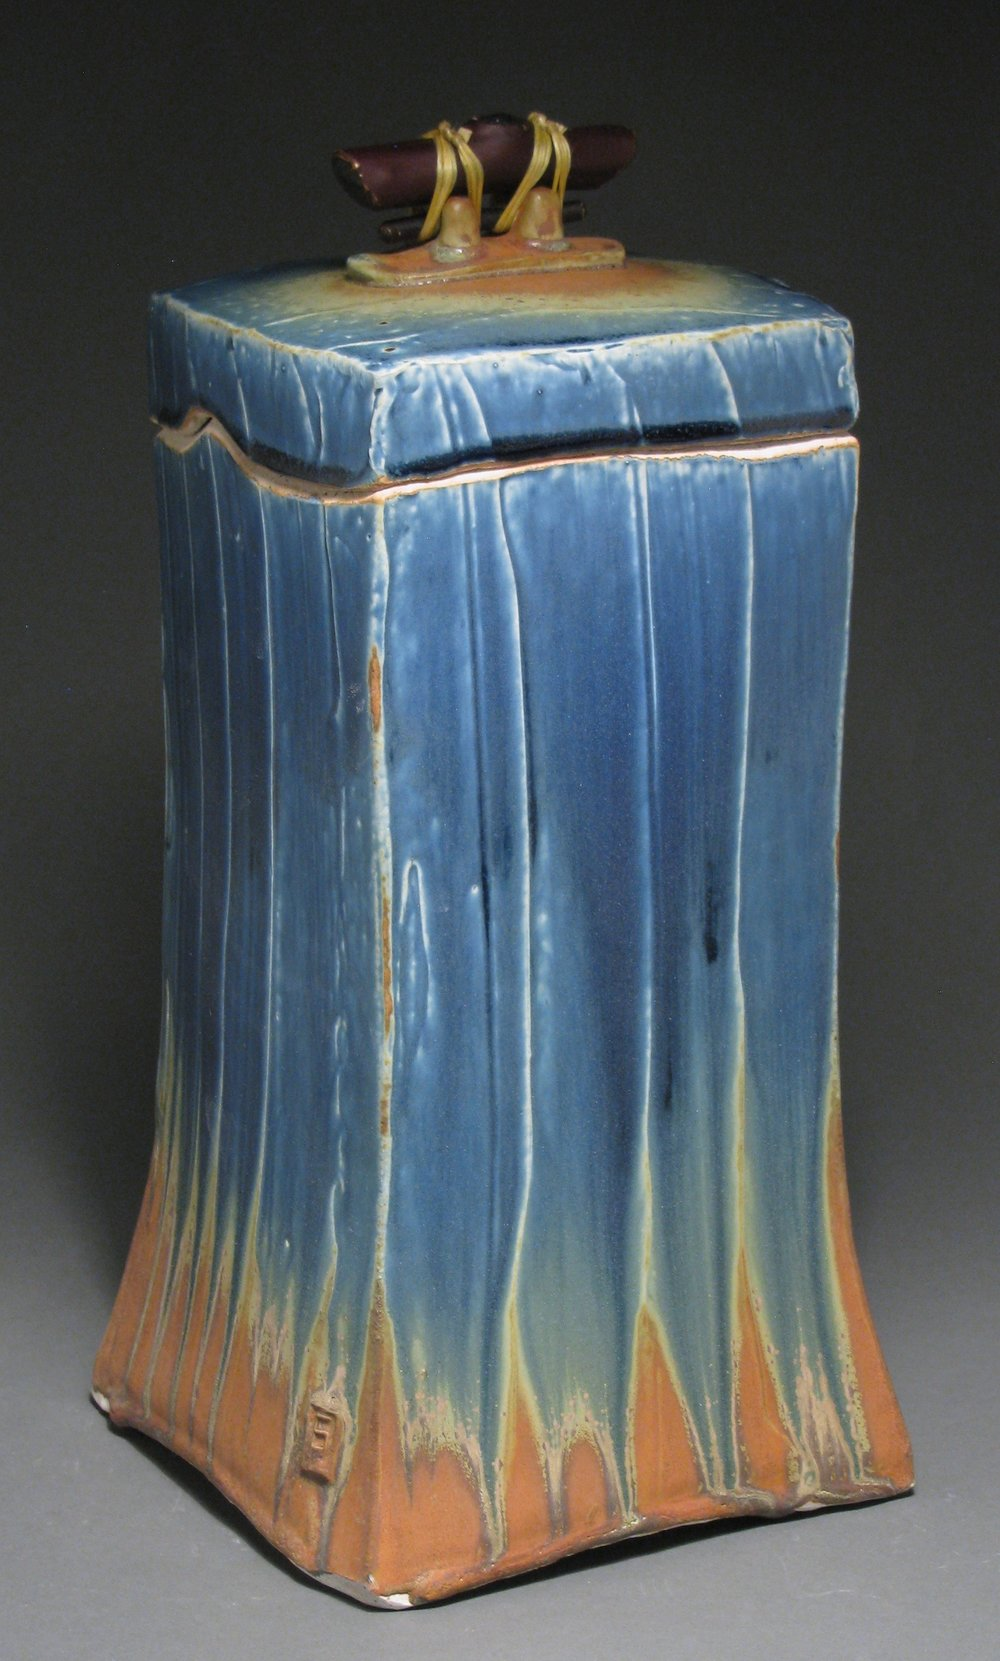 "Lidded box or funerary urn  13 1/4"" tall by 6 1/4"" deep by 6 1/4"" wide  Glazes: Mixed blue and matte rust"